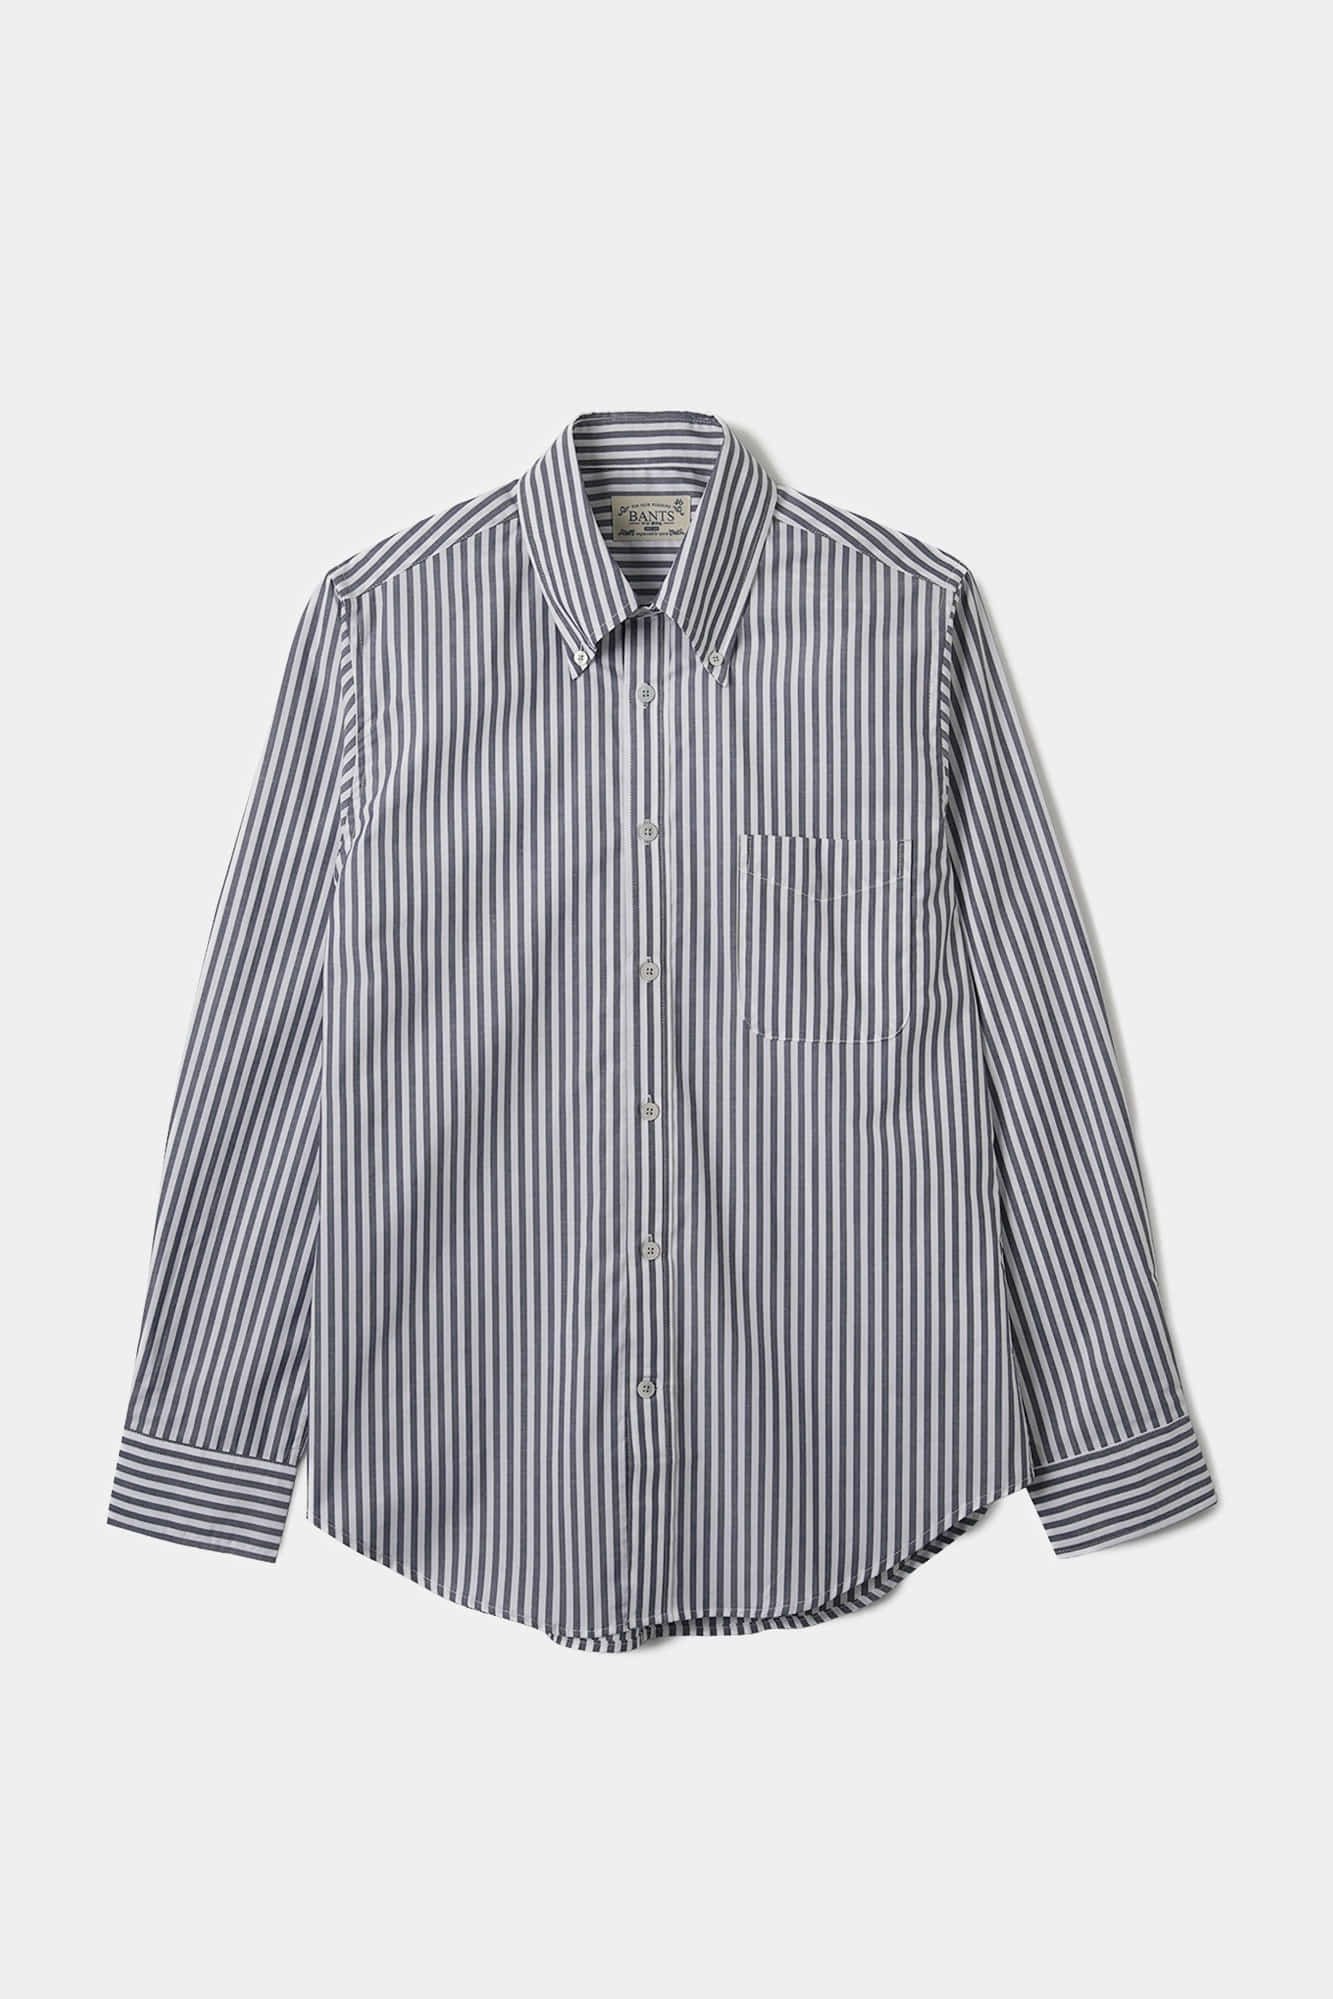 "BANTS OPD Stripe Broadcloth B.D Shirt ""Charcoal"""